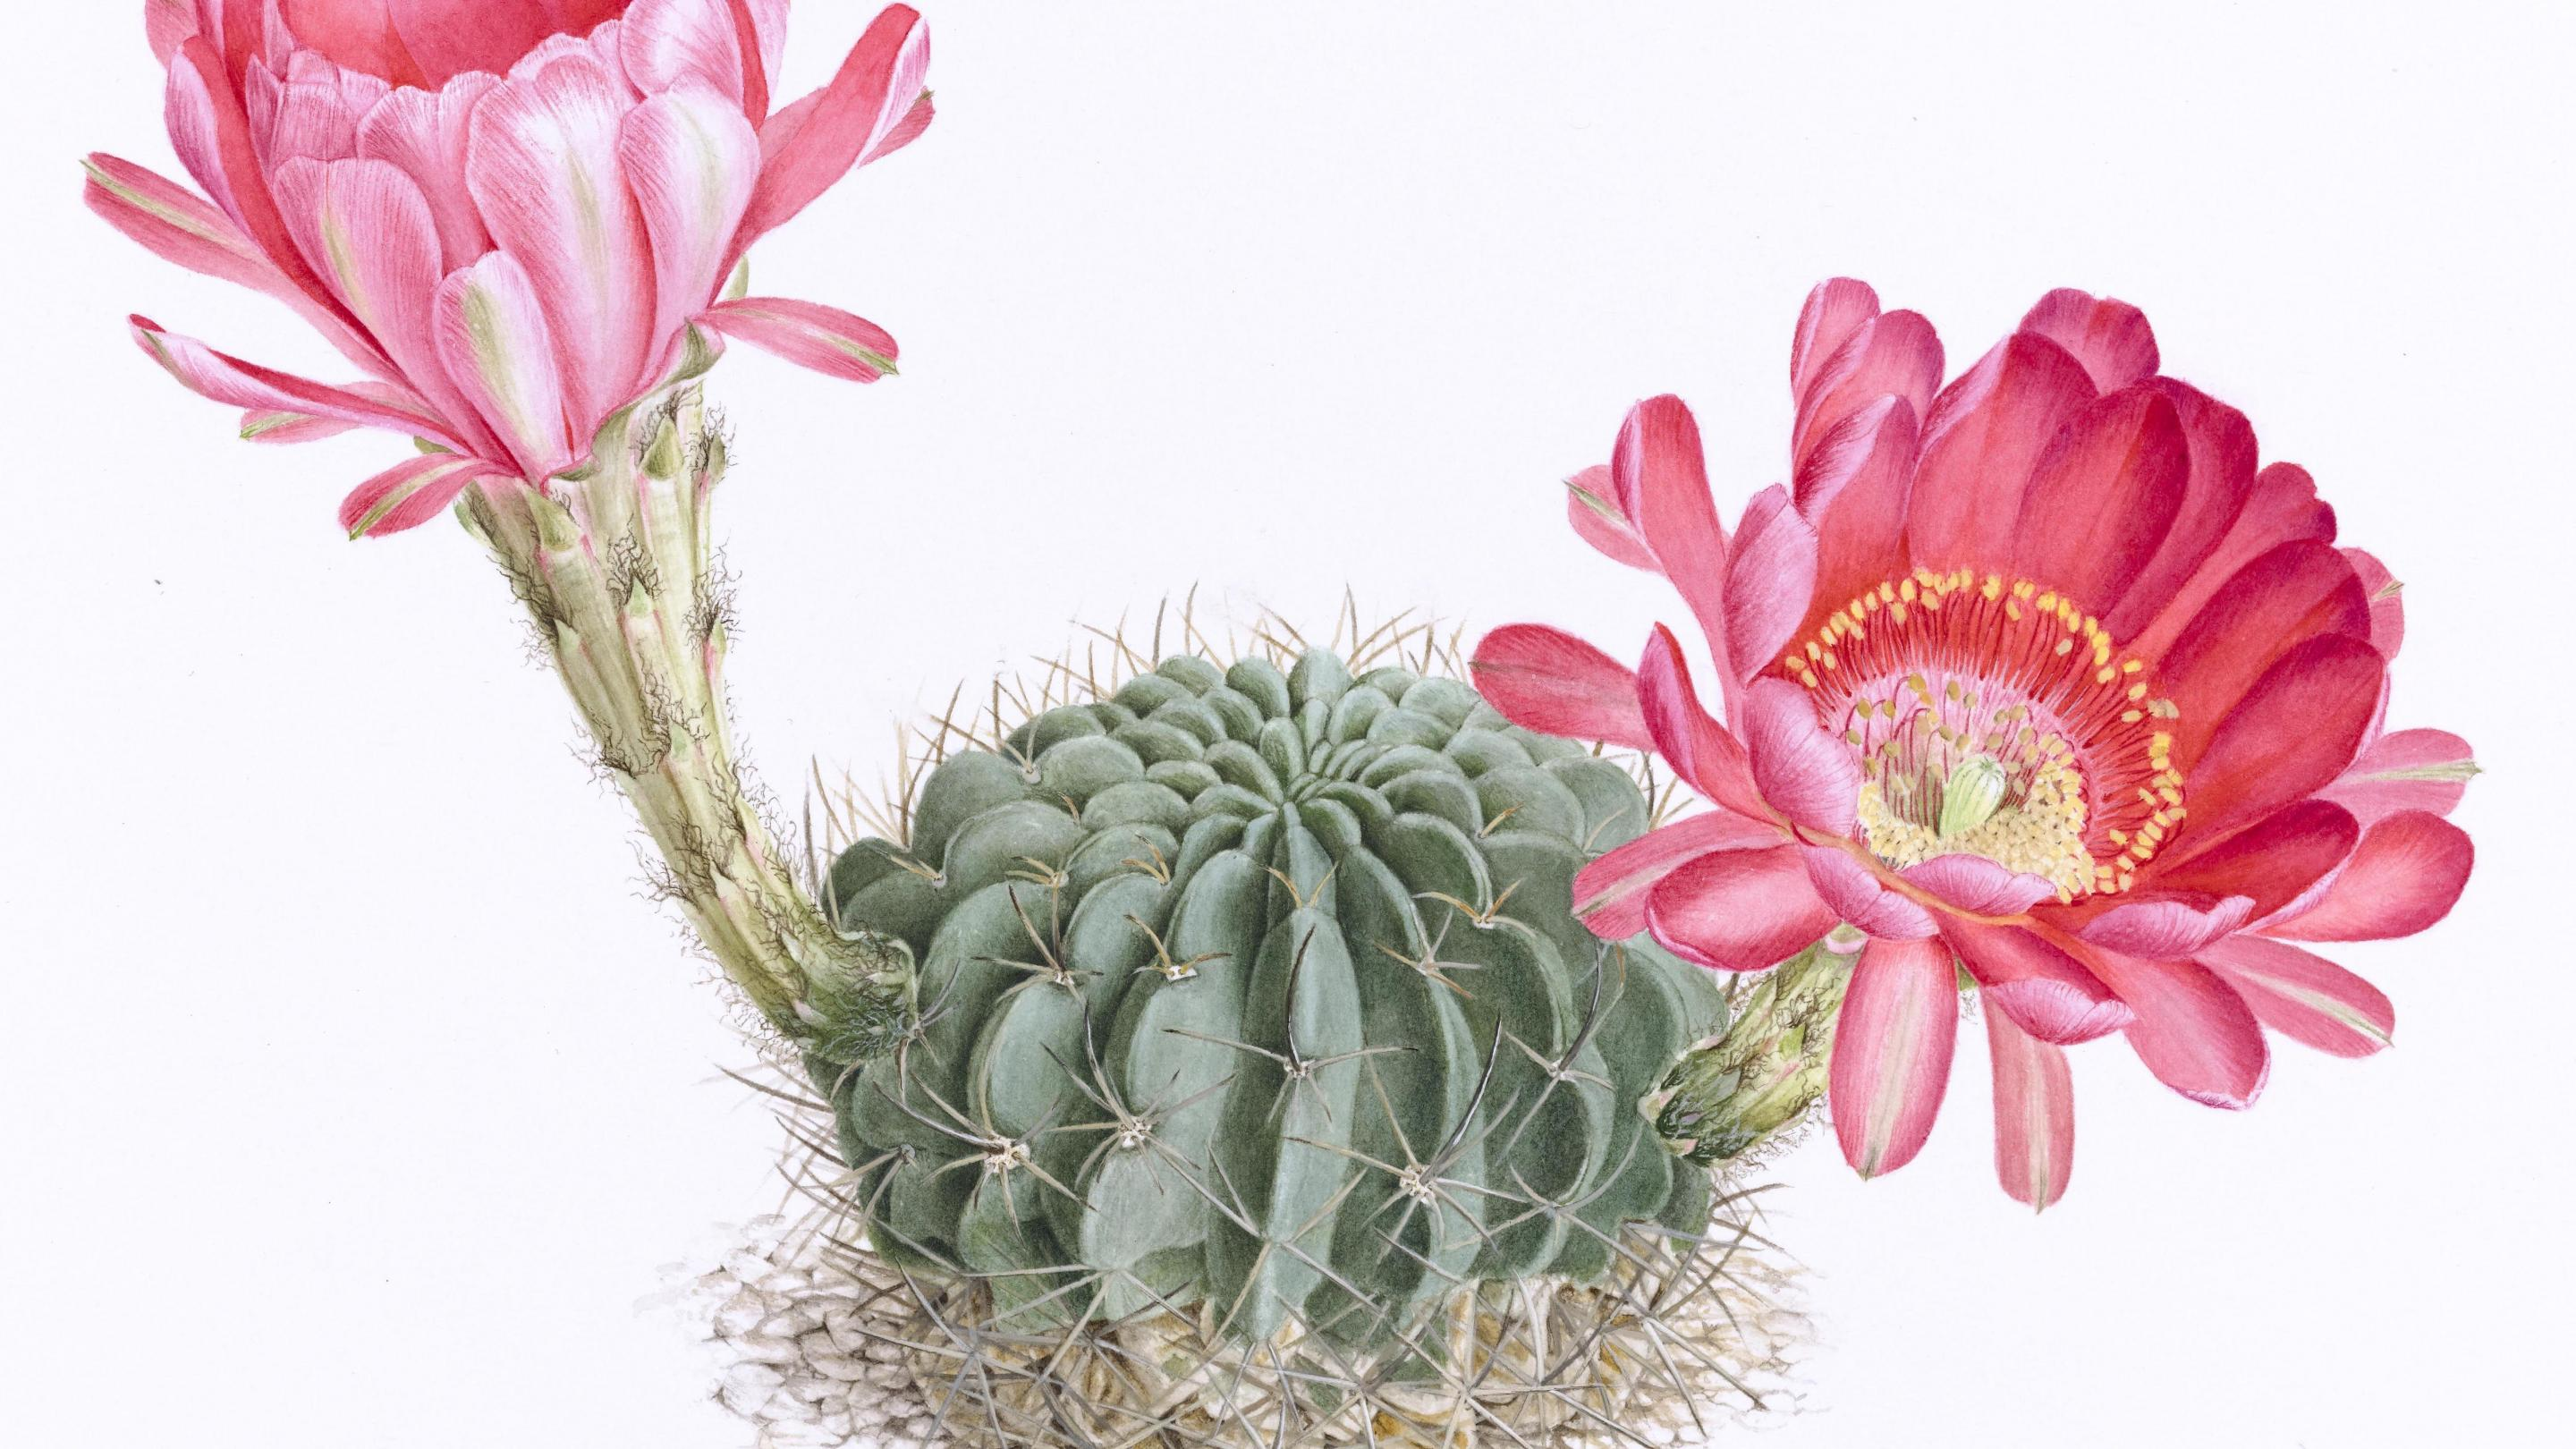 Echinopsis ancistrophora painted by the Margaret Mee Fellowship Programme 2016 Artist Scholar, Alessandro Candidô